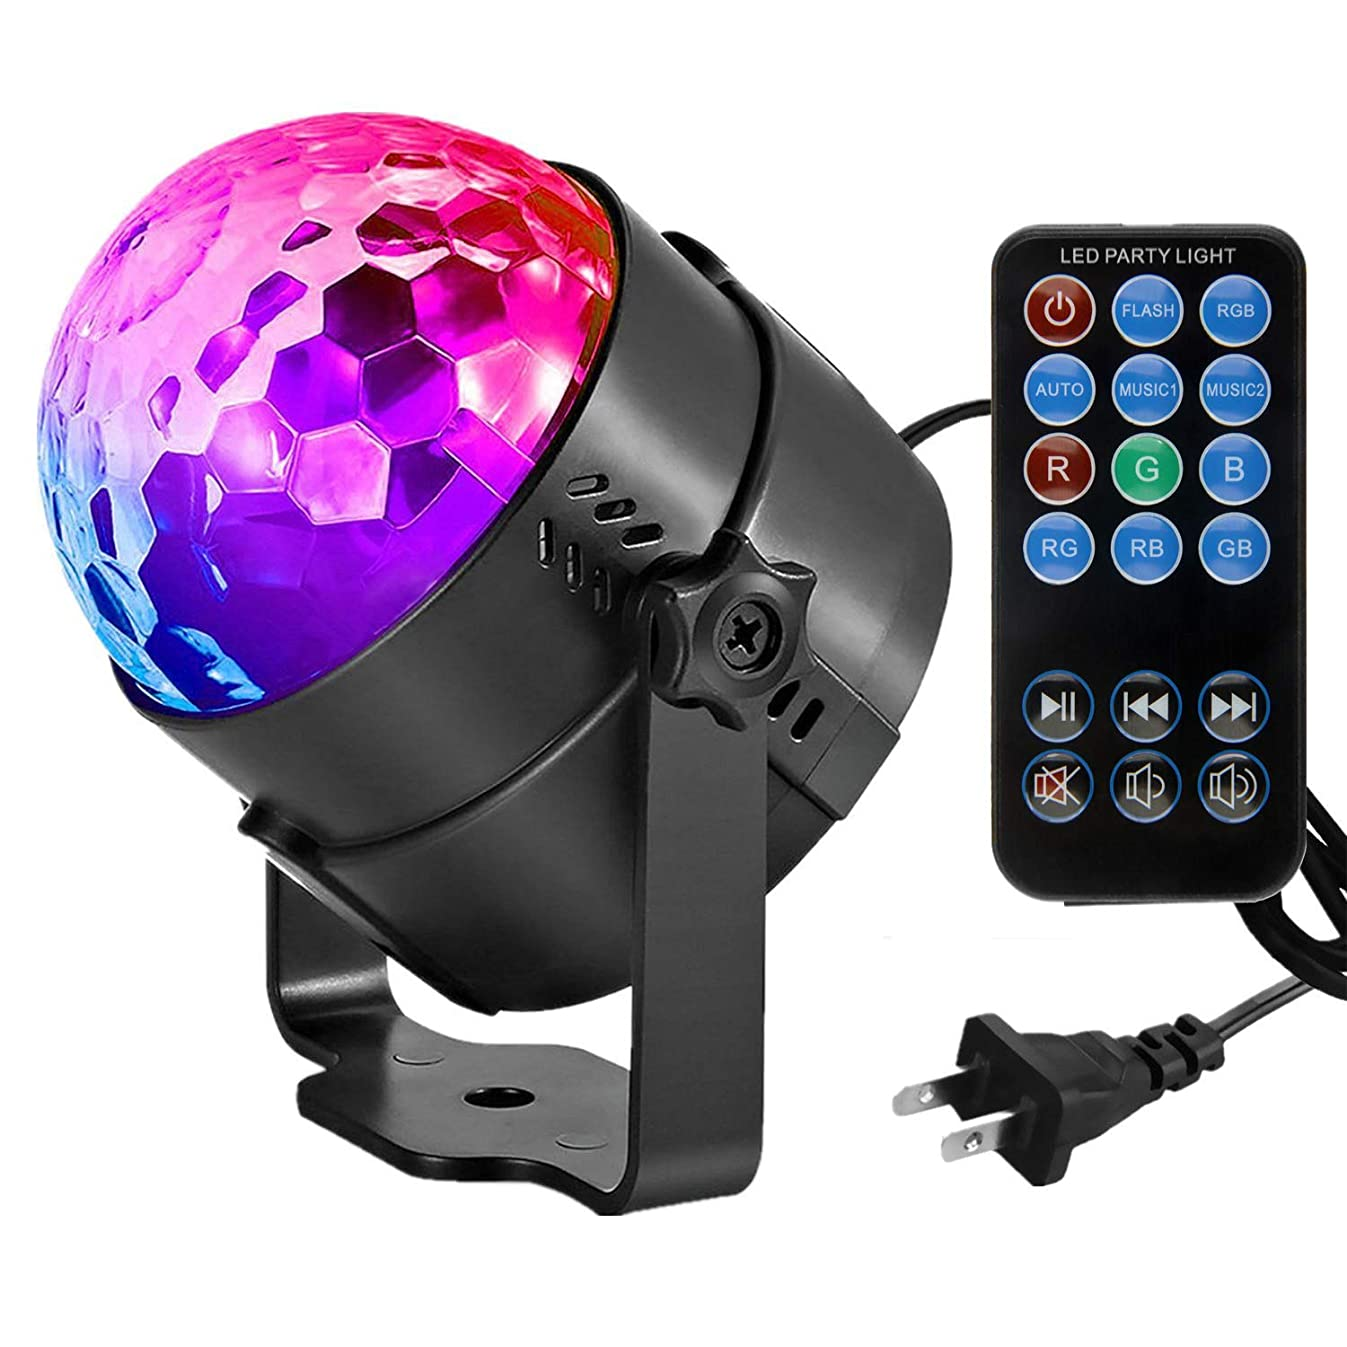 Led Sound Activated Party Lights with Remote Control DJ Lighting Disco Ball Strobe Club Lamp 7 Modes Stage Par Light Magic Mini Led Stage Lights for Christmas Home Room Dance Partiee Parties Birthday